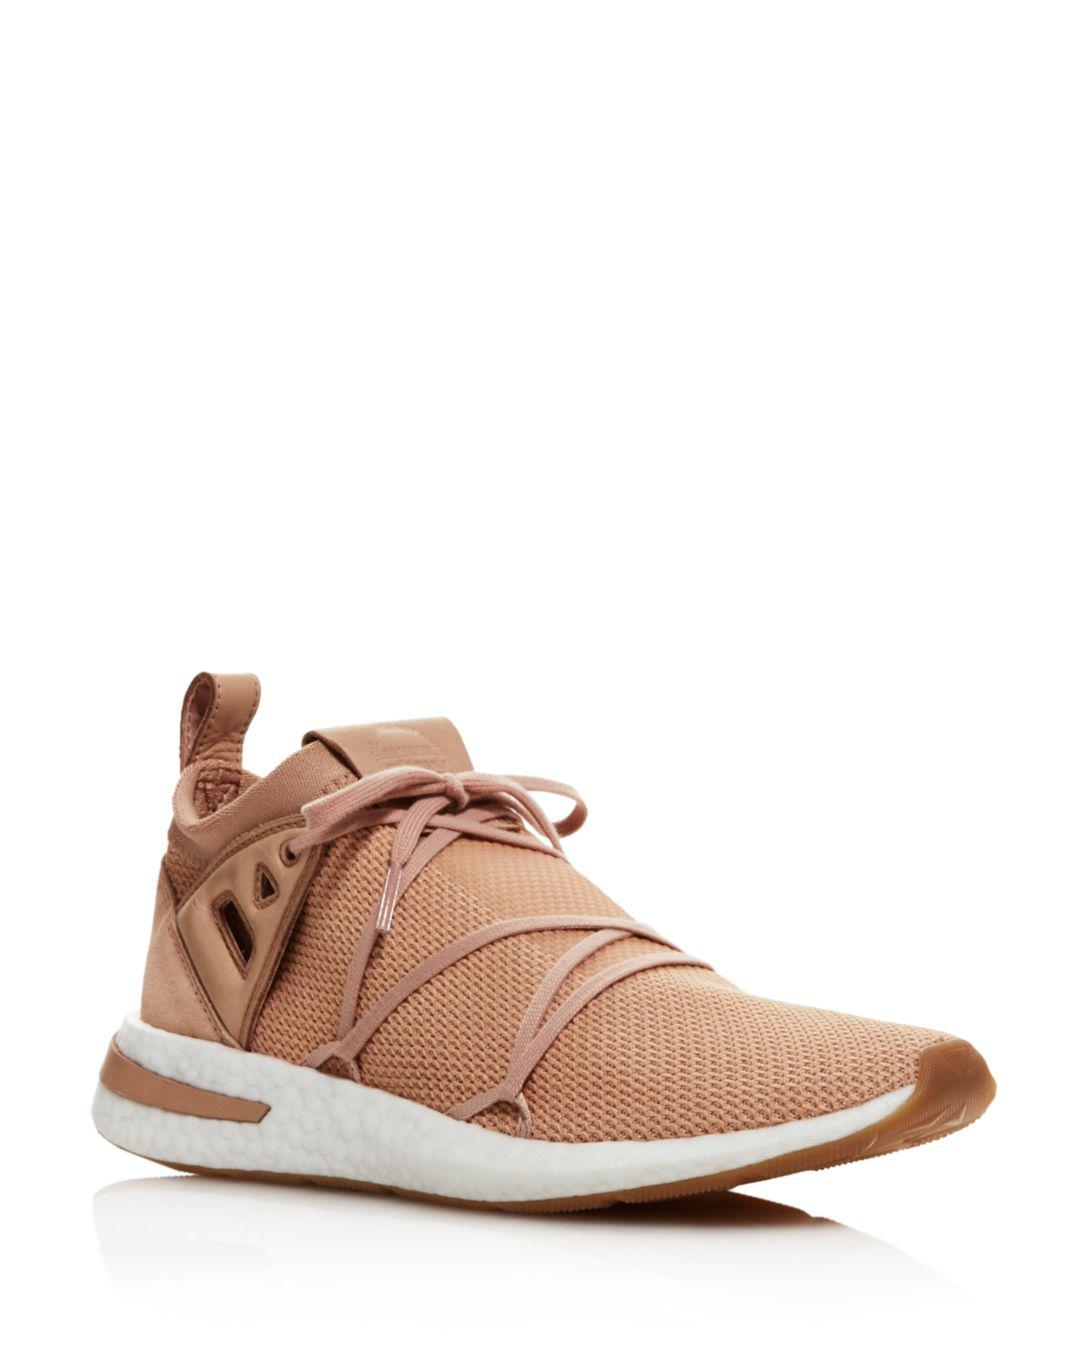 first rate 95857 2bc02 adidas. Womens Arkyn Knit Lace Up Sneakers